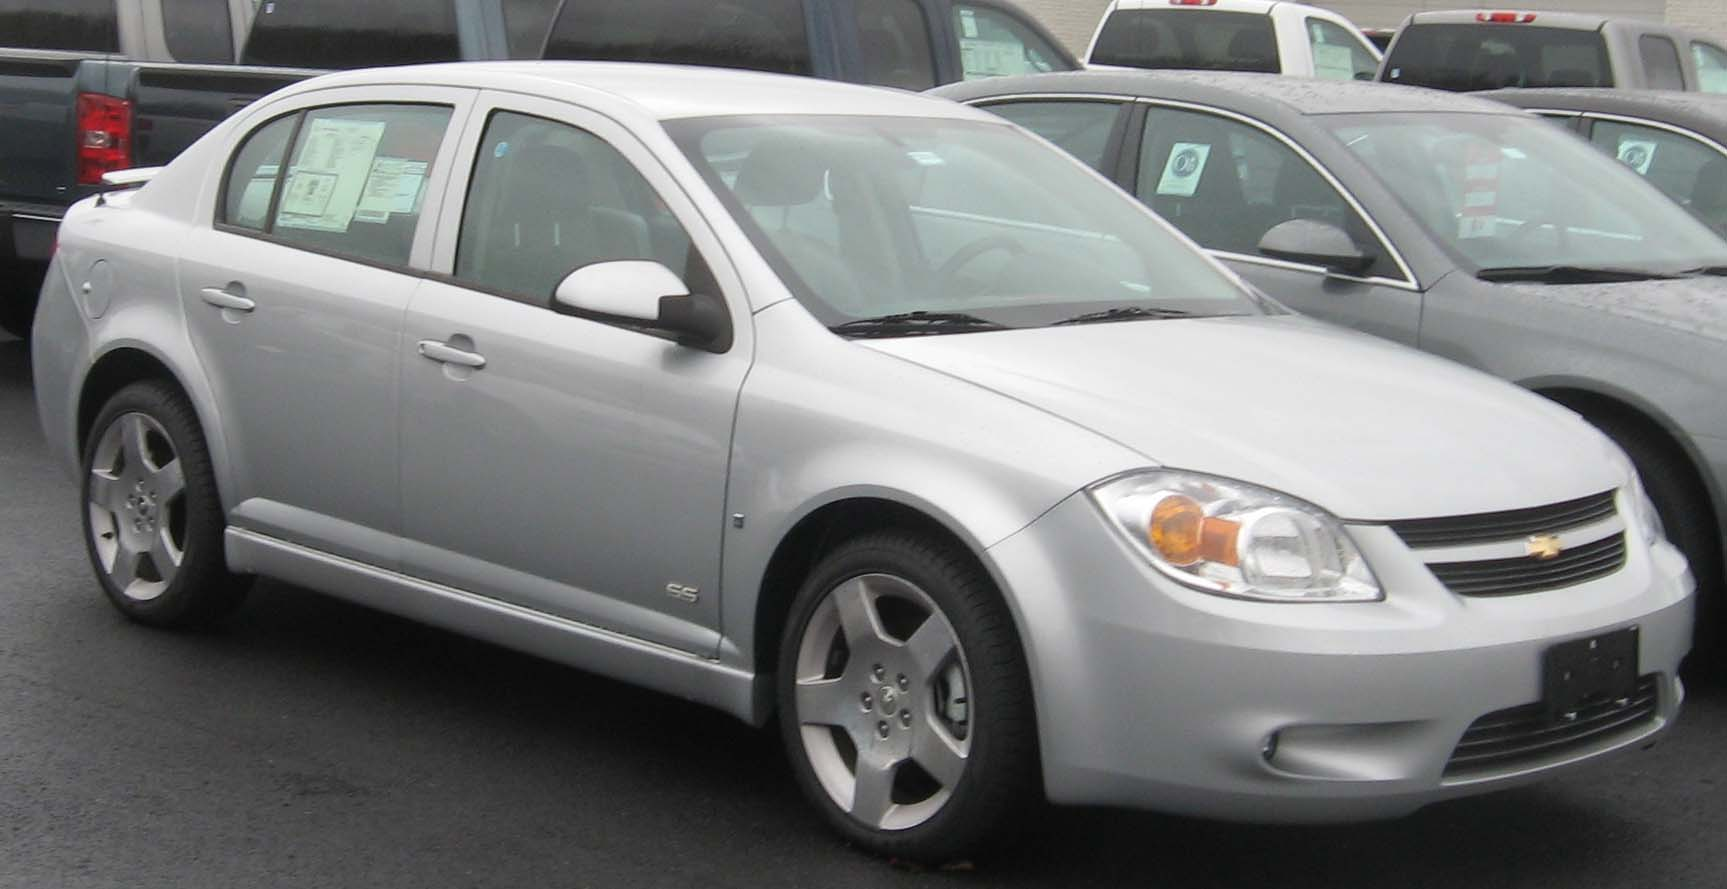 Cobalt chevy cobalt 2007 reviews : Buy A Chevy Cobalt SS Instead Of Any Other Car - Right Foot Down